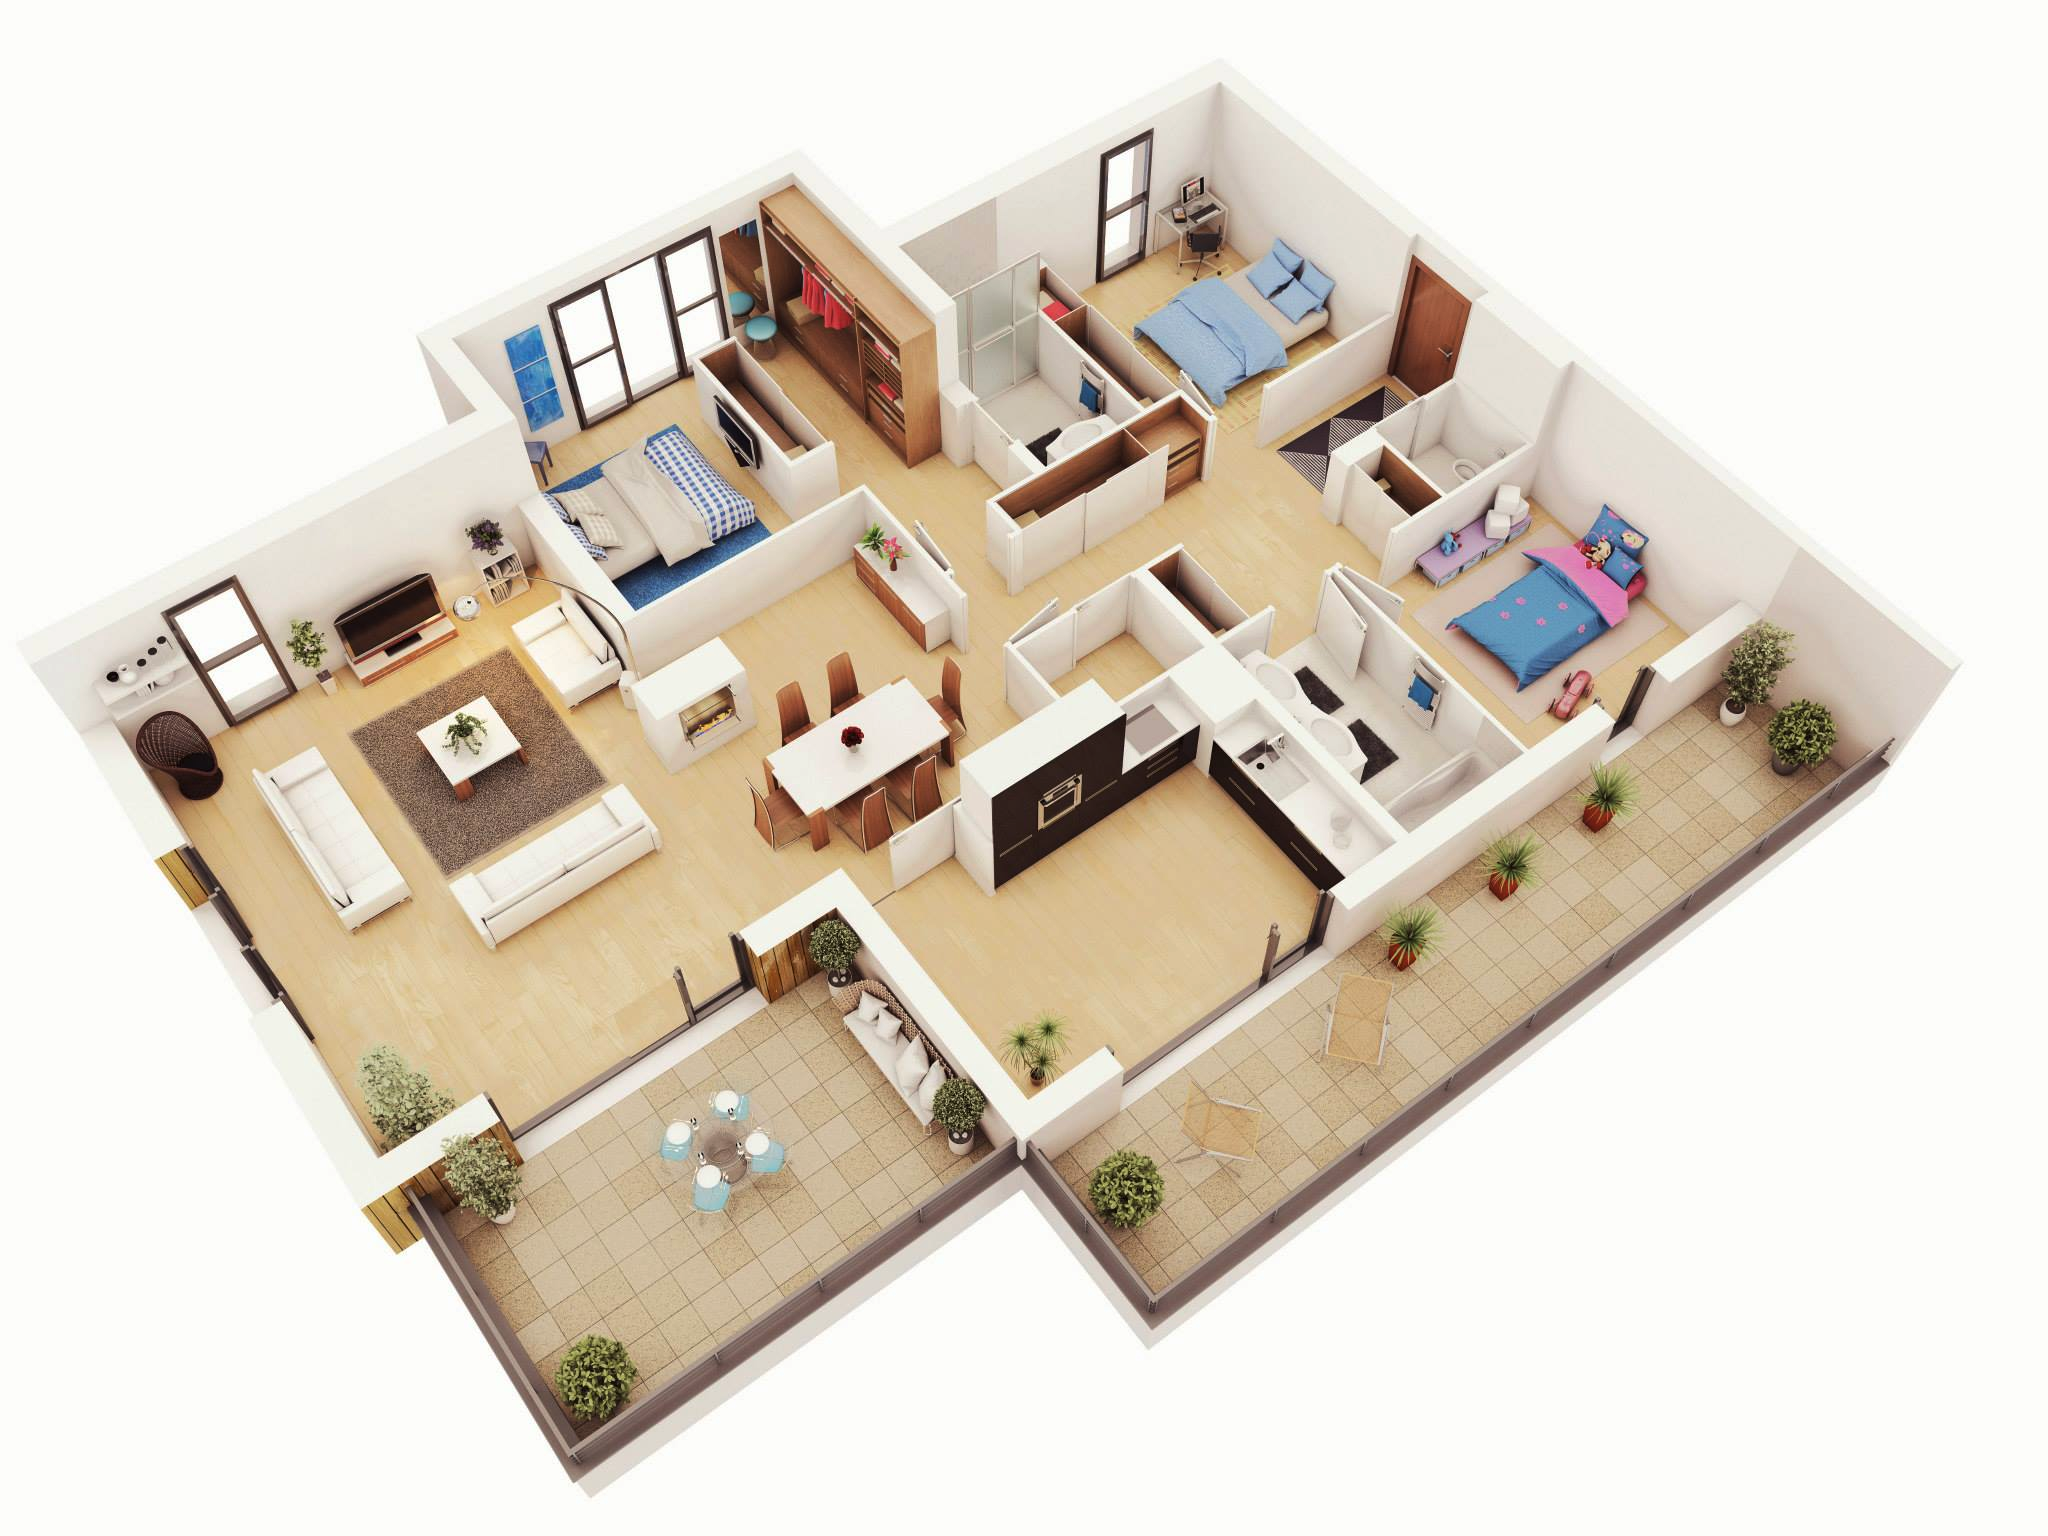 25 more 3 bedroom 3d floor plans Floor plan of a 3 bedroom house